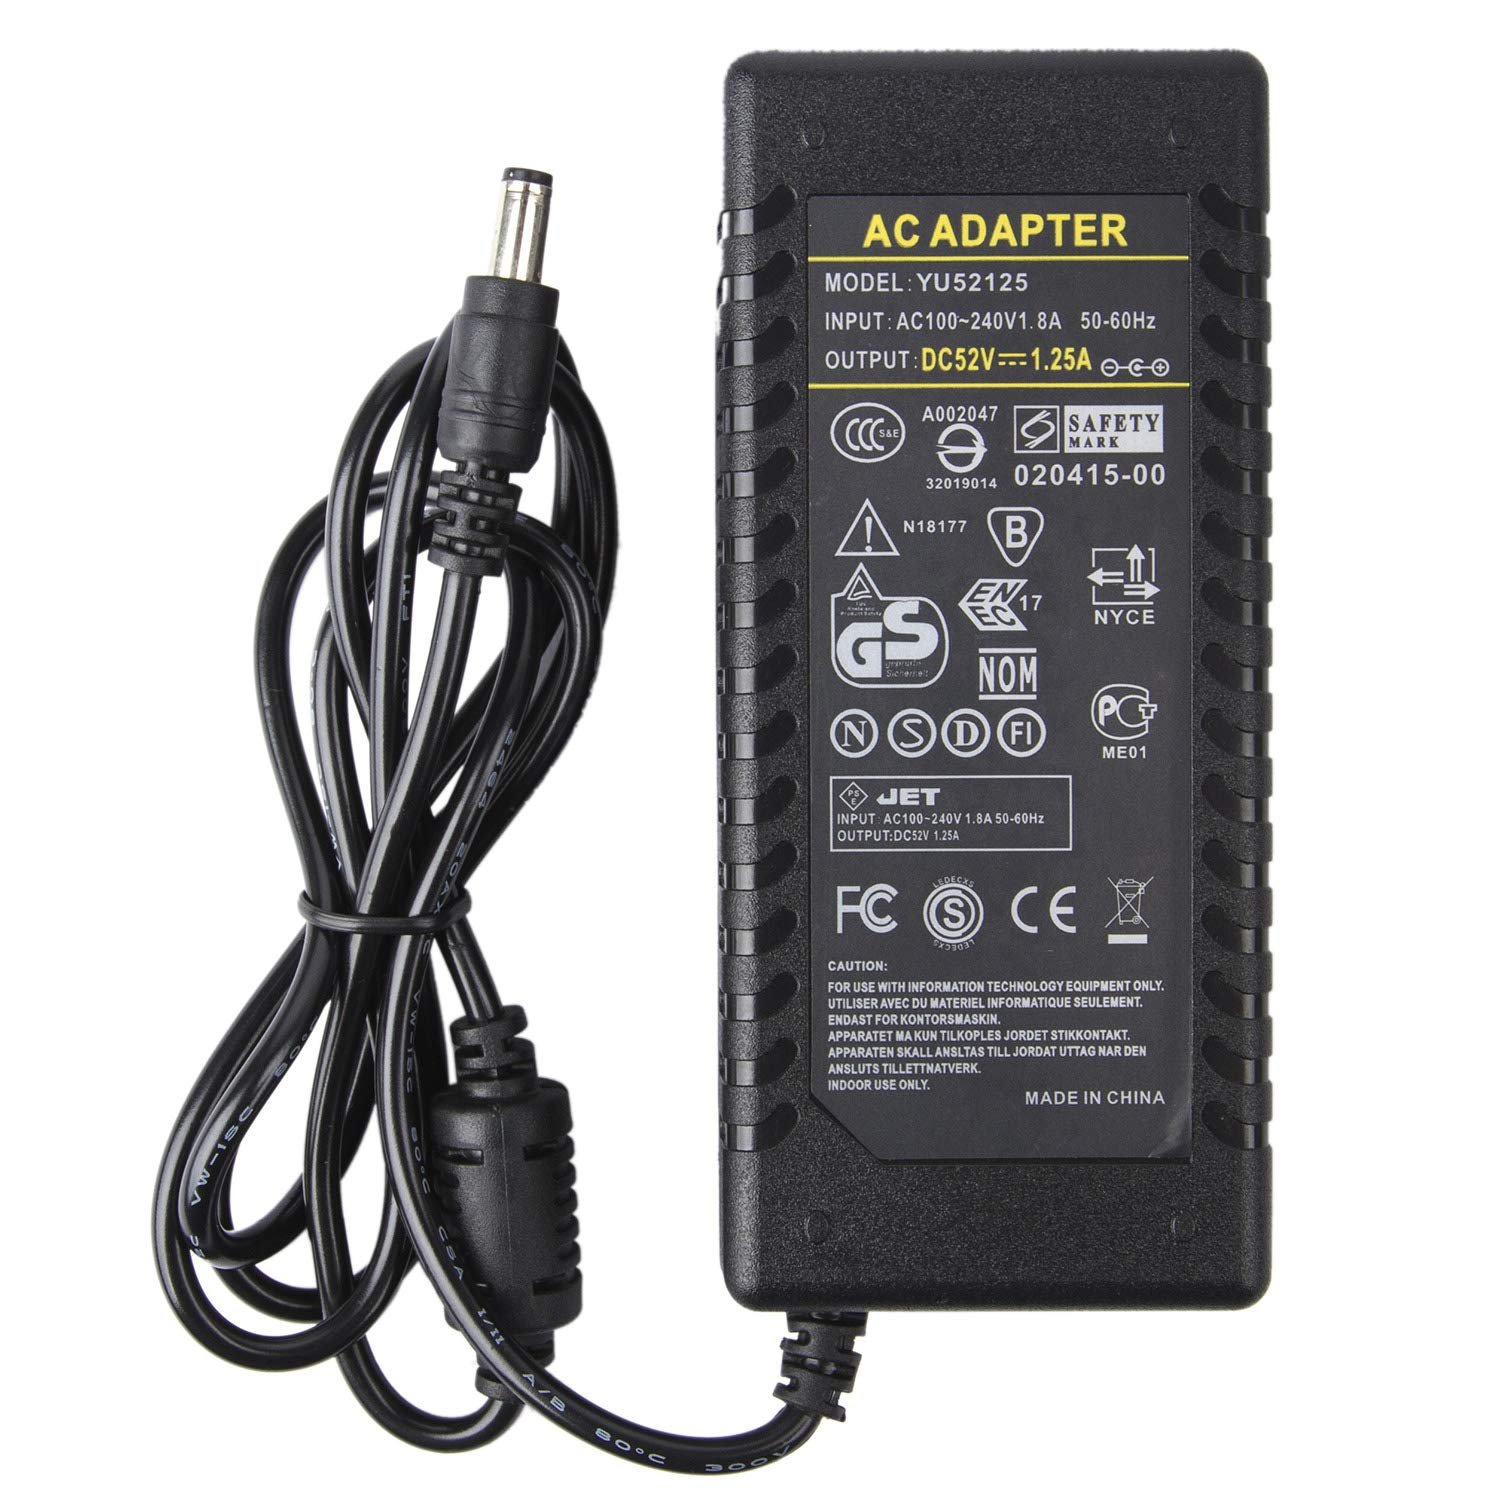 COOLM 52V 2A 104W AC Adapter Power Charger Interface 5.5x2.5mm Suitable for Game Machine, Language Repeater, Notebook Computer 52V2A